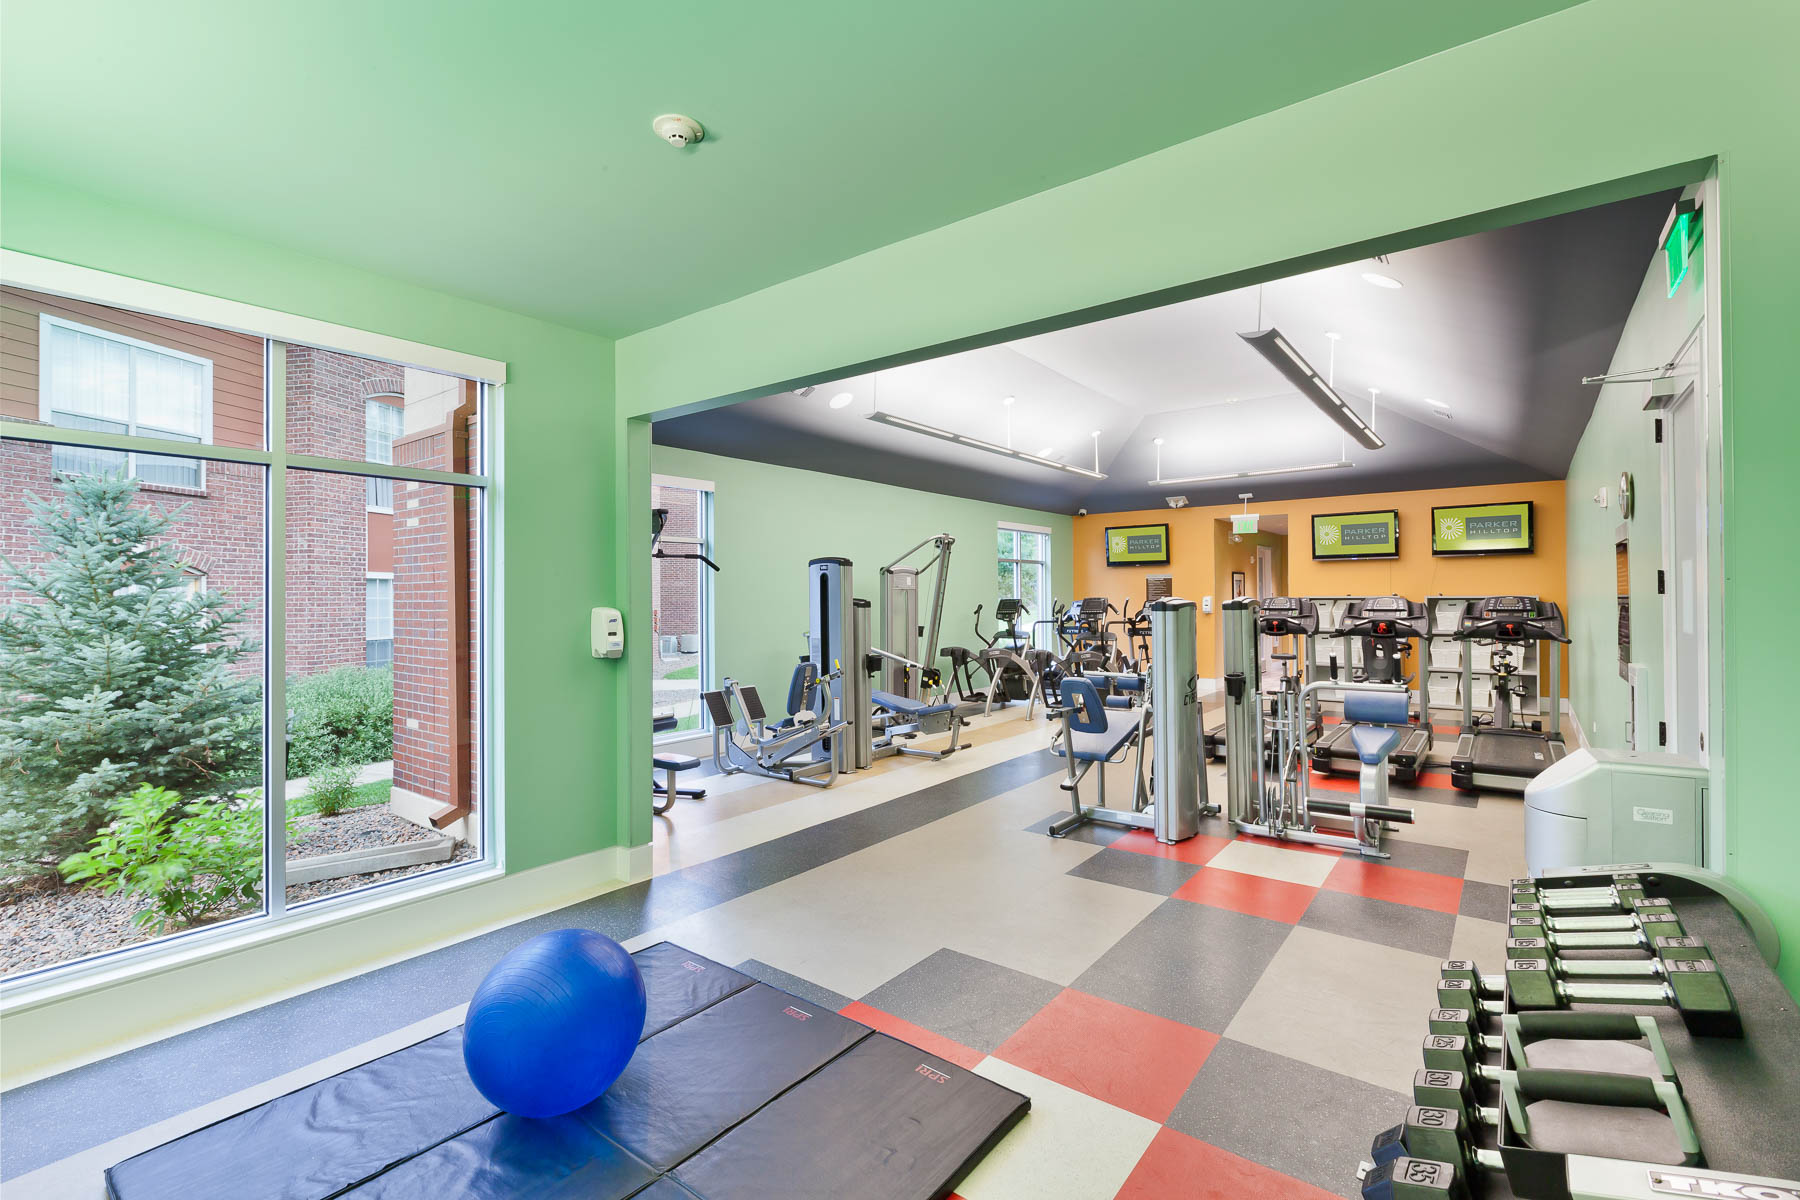 Parker HIlltop Apartments Fitness Center shot on location in Parker Colorado